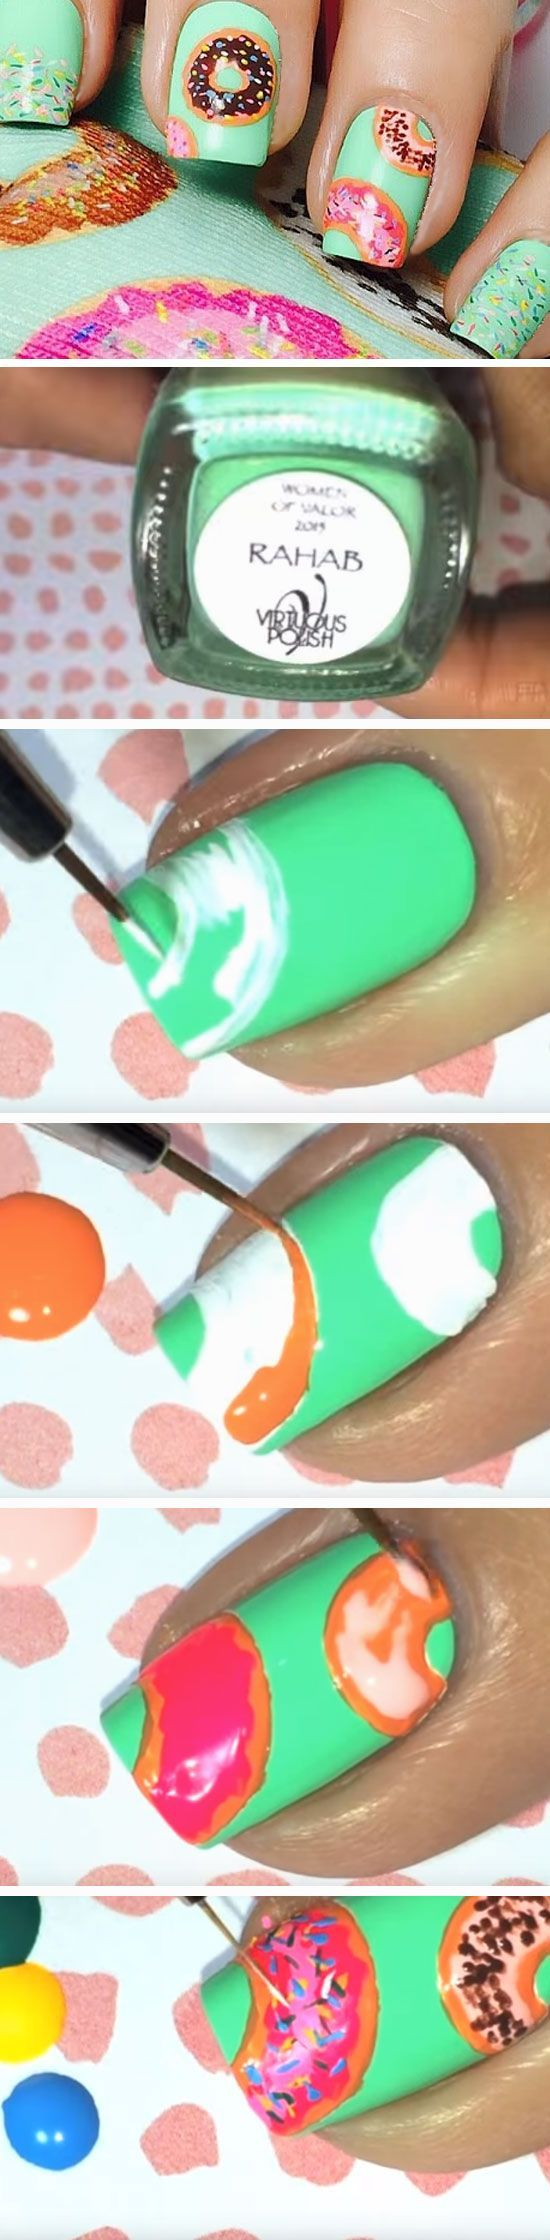 Donuts | Click Pic for 22 Easy Spring Nail Designs for Short Nails 2016 | Awesome Nail Art Tutorials for Beginners